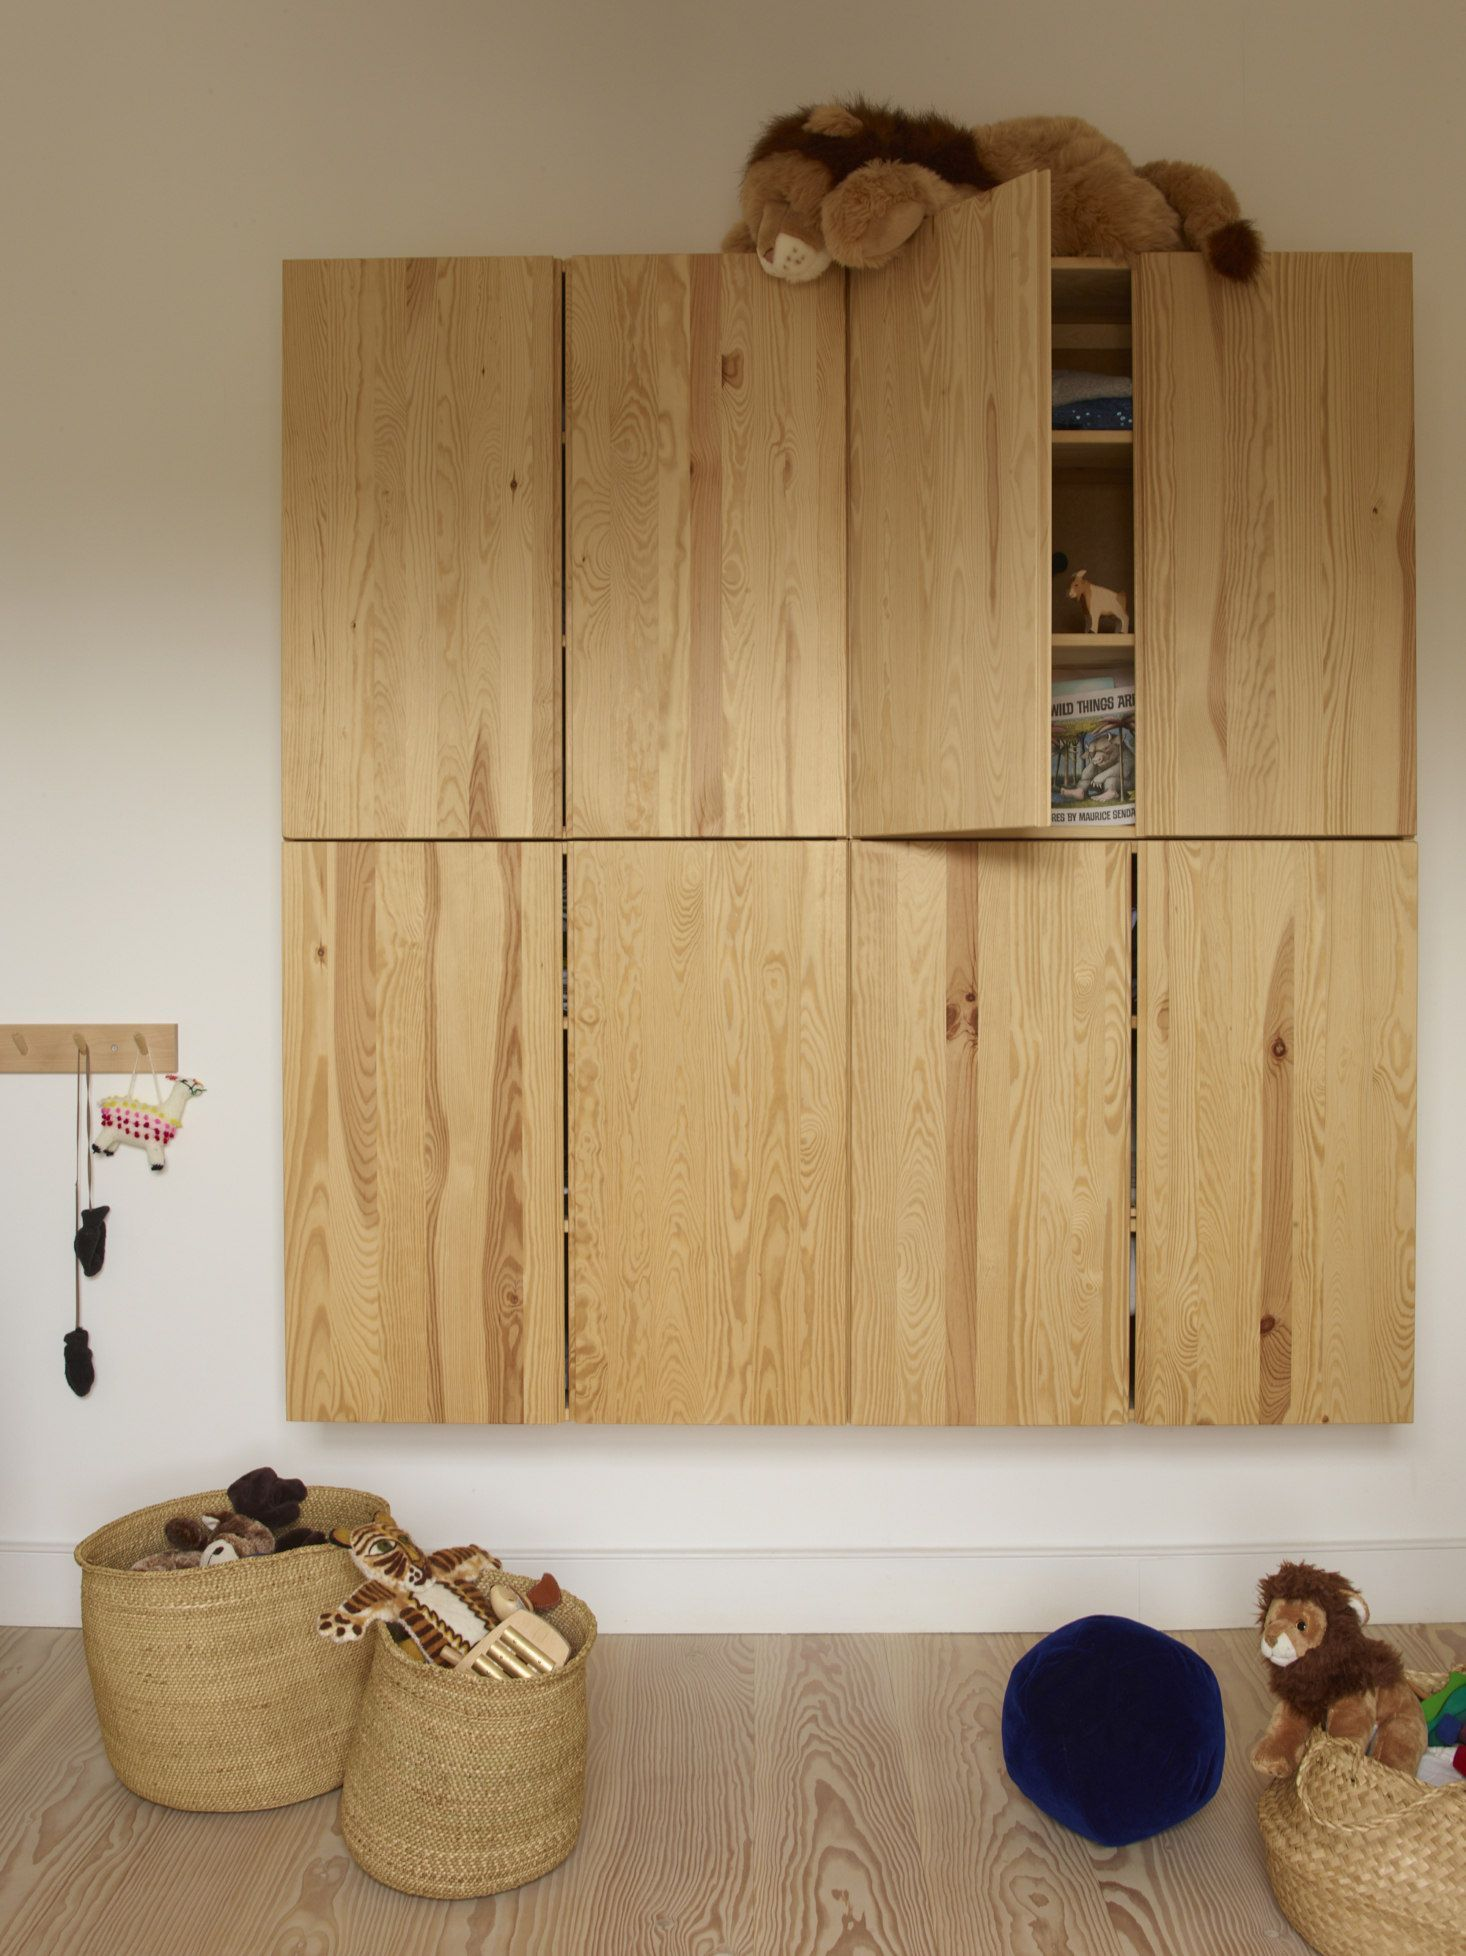 Wall Mounted Bedroom Storage Cabinets 2021 In 2020 Ikea Storage Ikea Storage Furniture Ikea